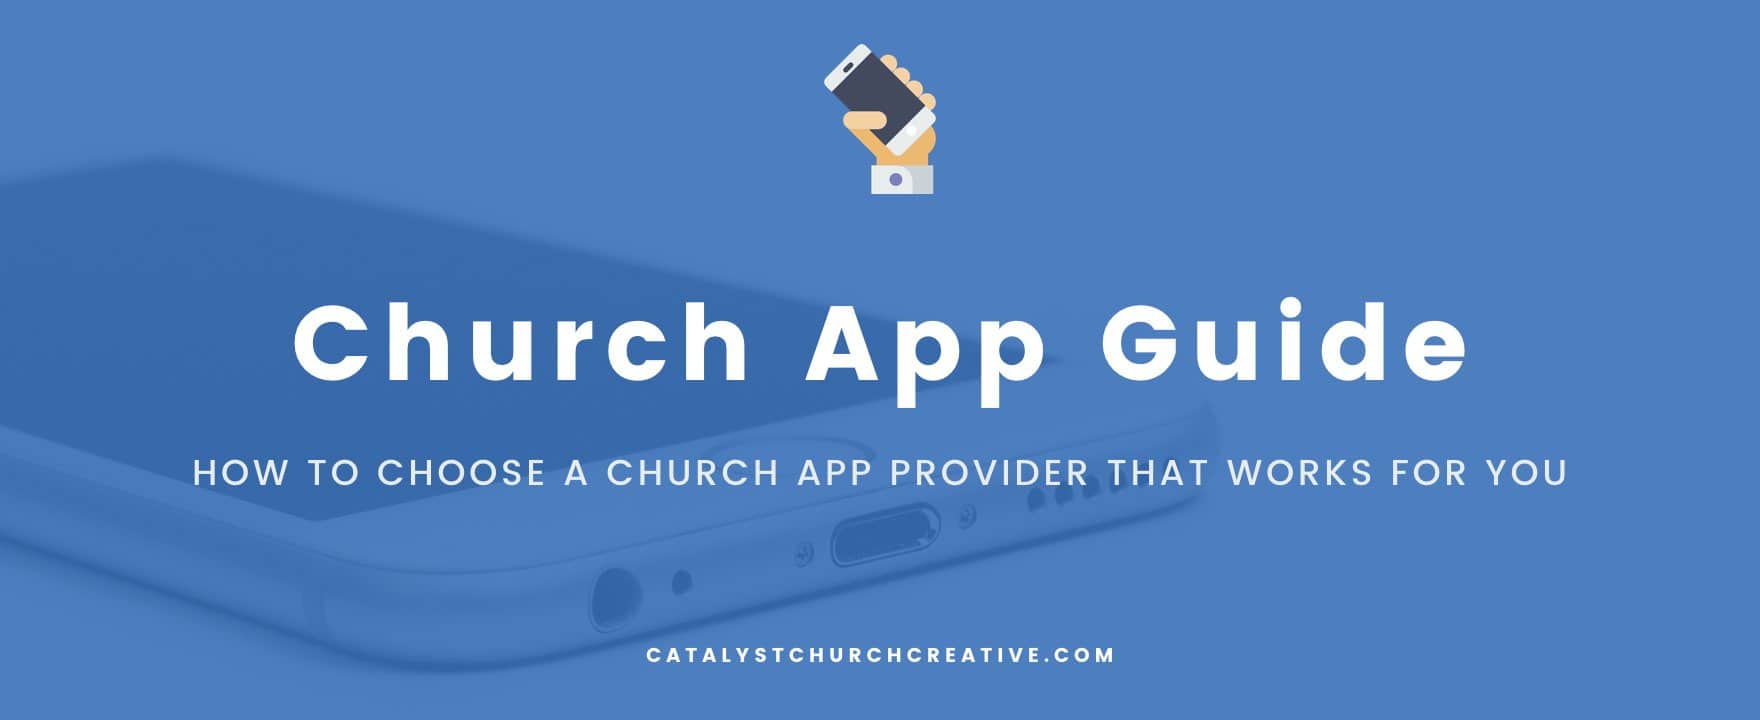 church_app_guide